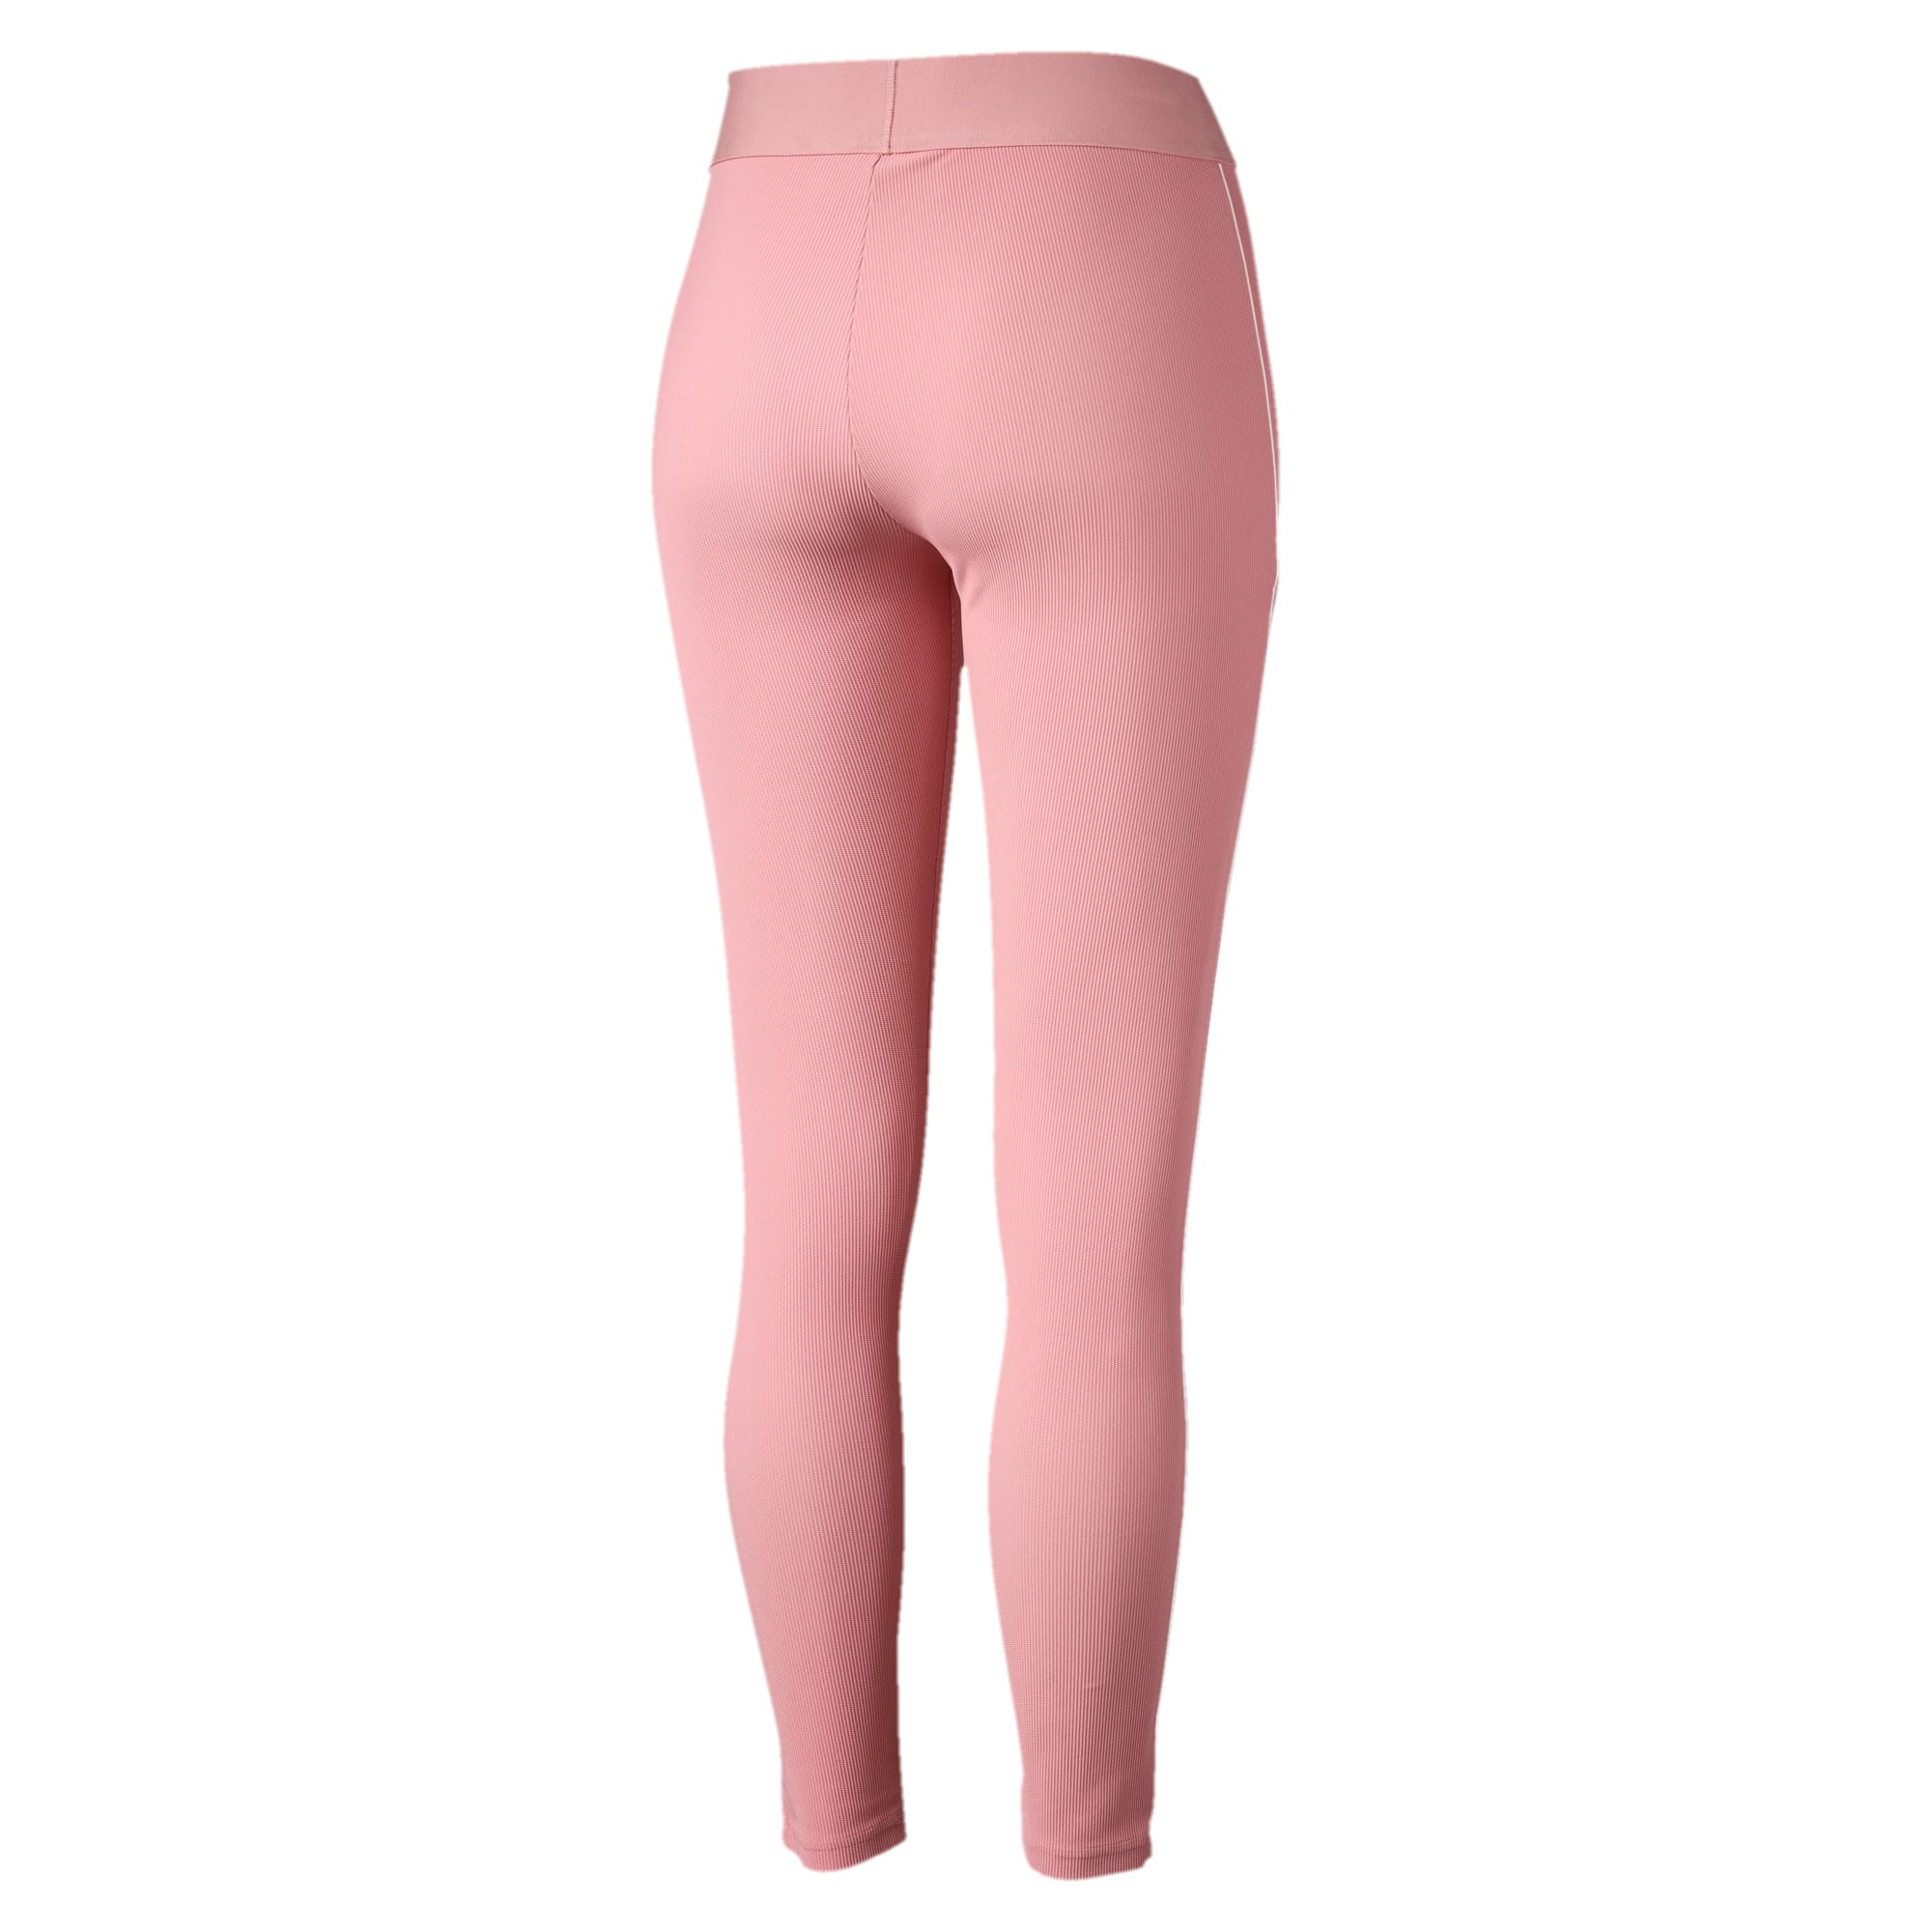 Thumbnail 5 of Classics Rib Women's Leggings, Bridal Rose, medium